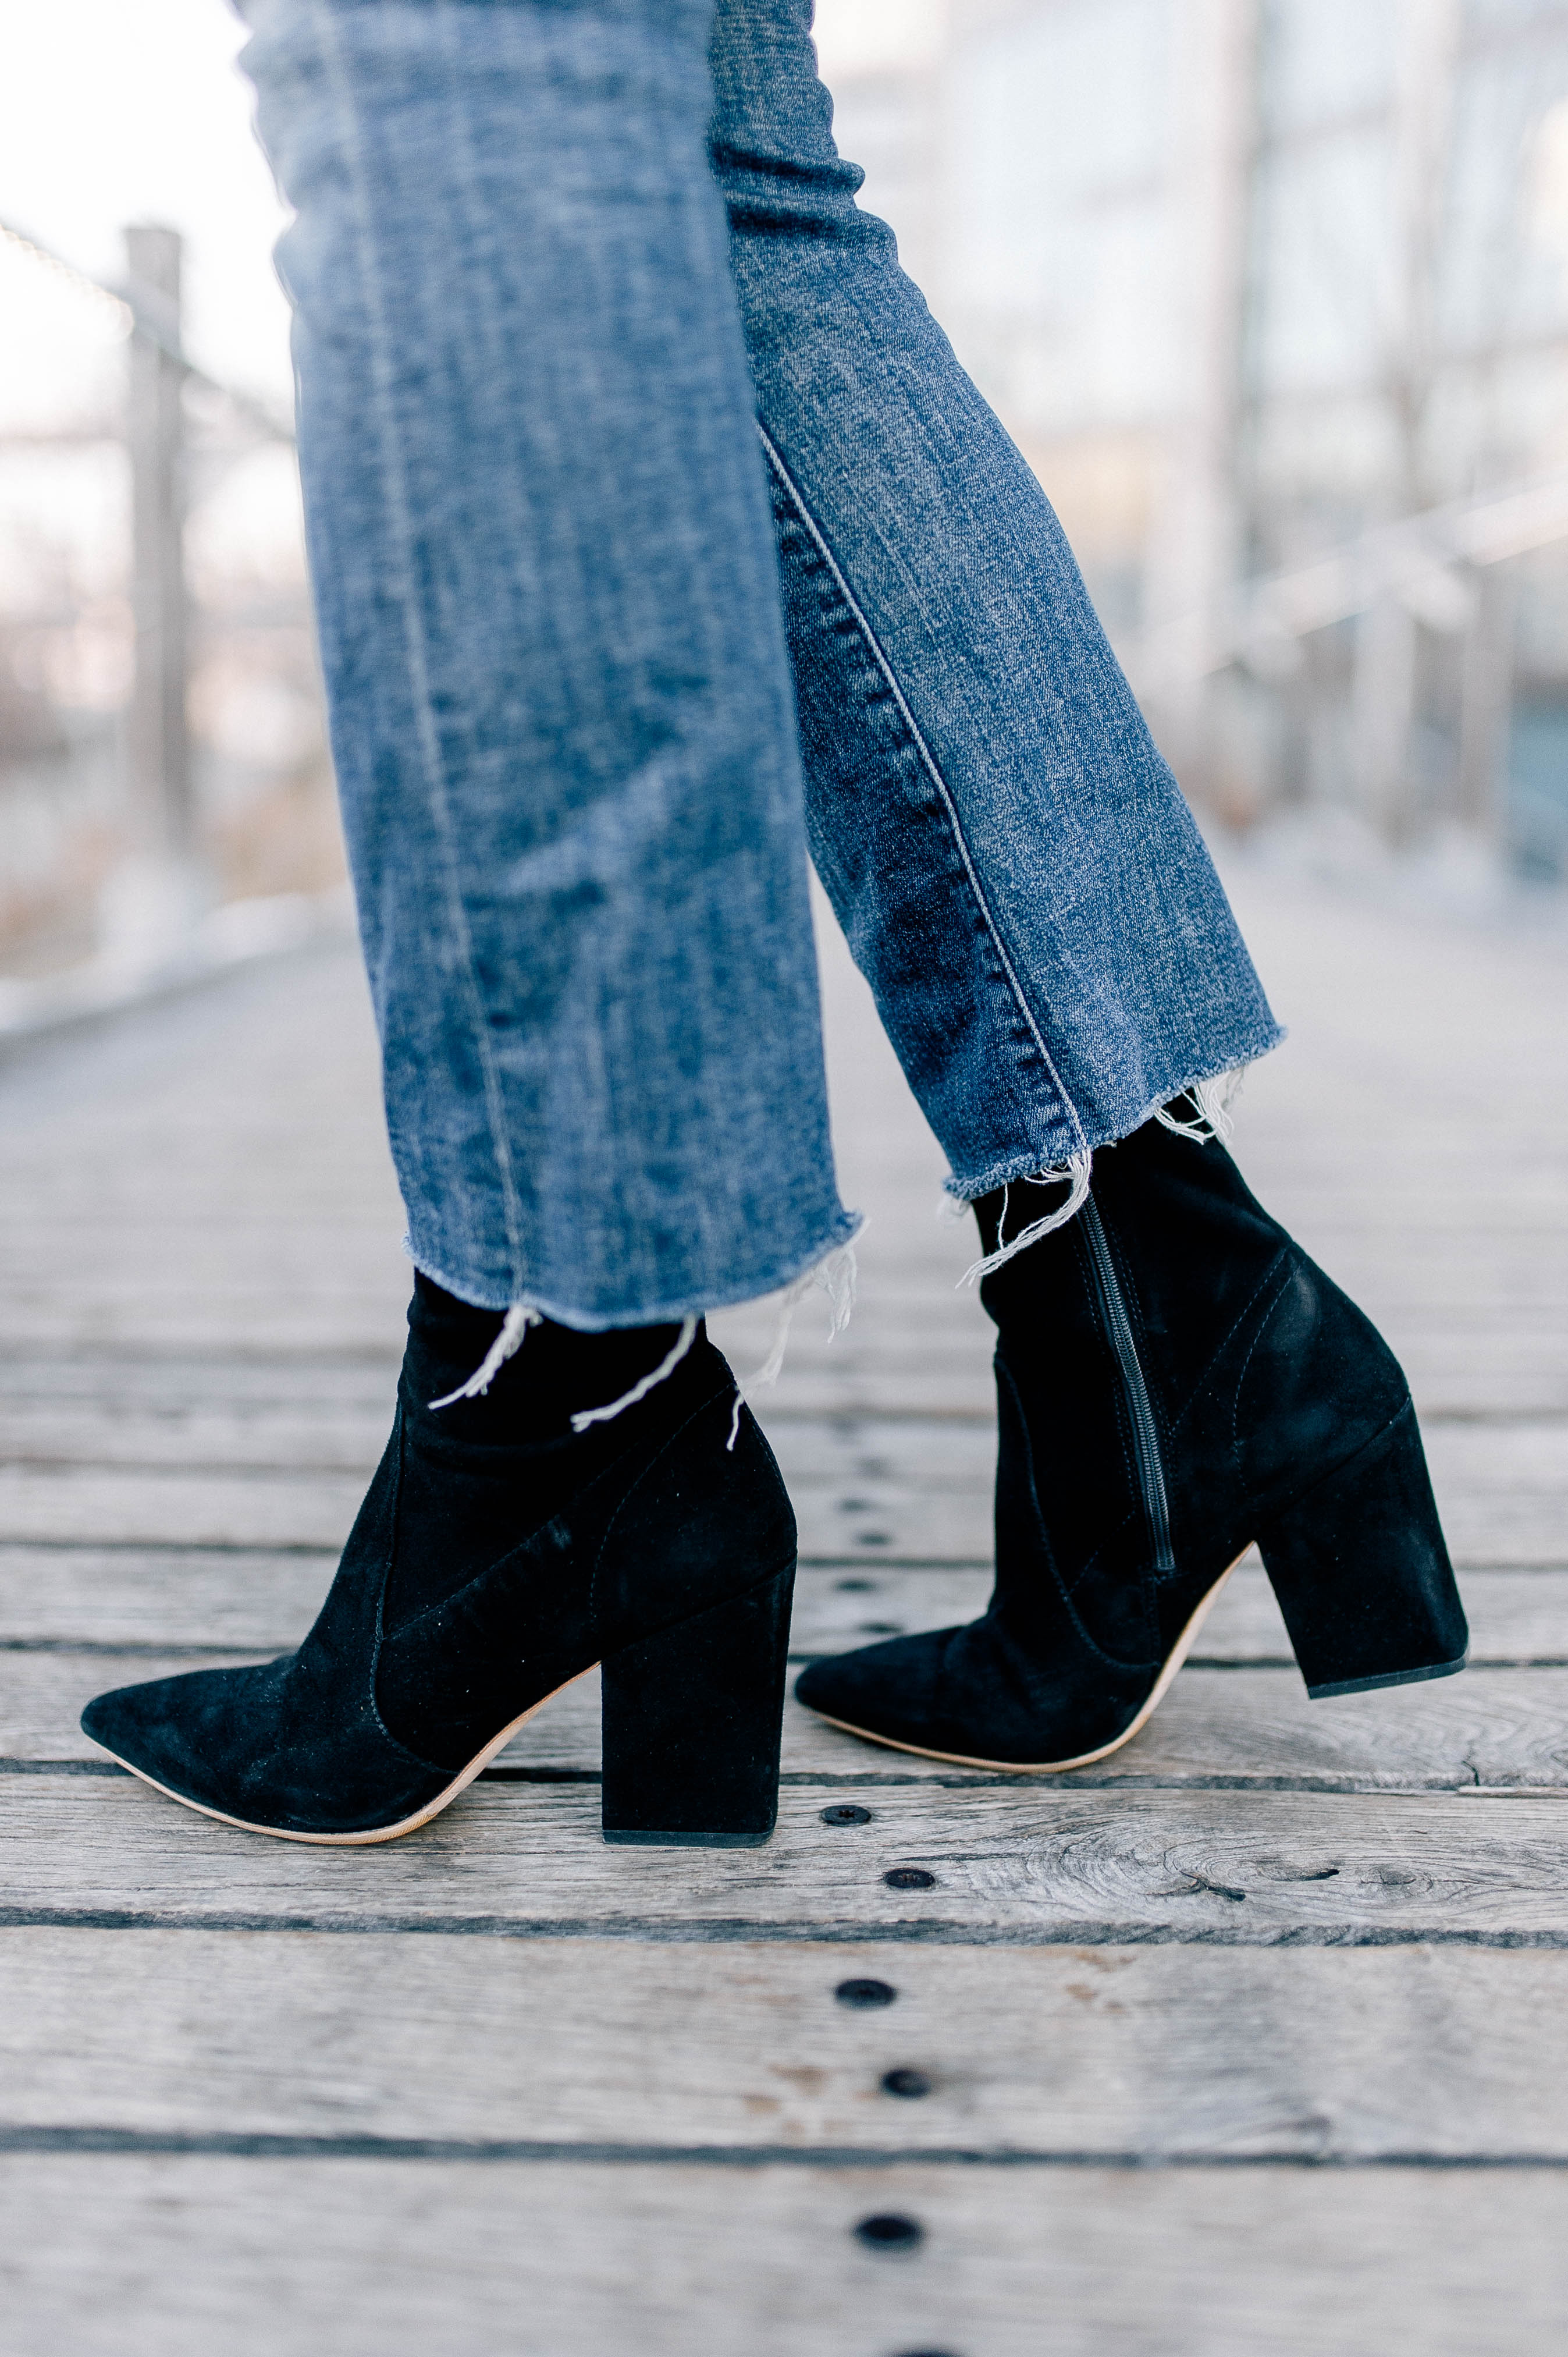 Kick Flare Jeans & Booties